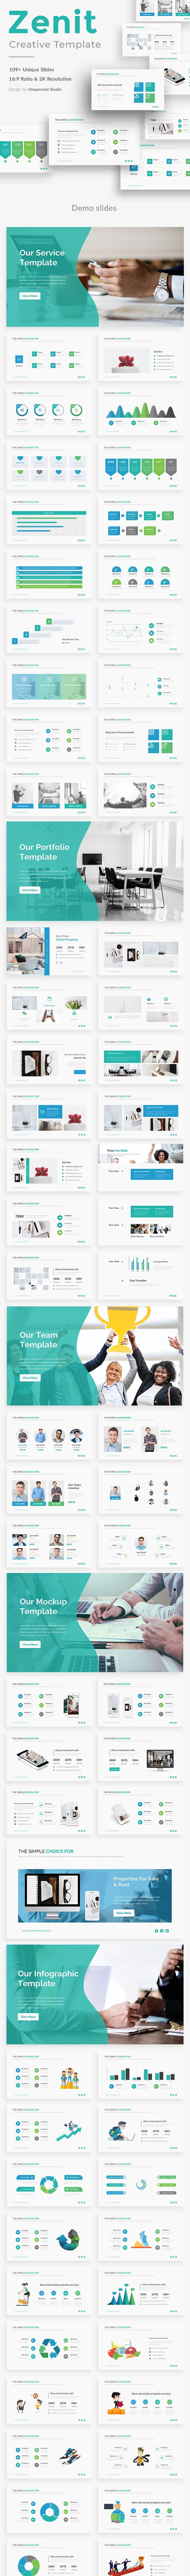 Zenit Business Powerpoint Template - Business Keynote Templates